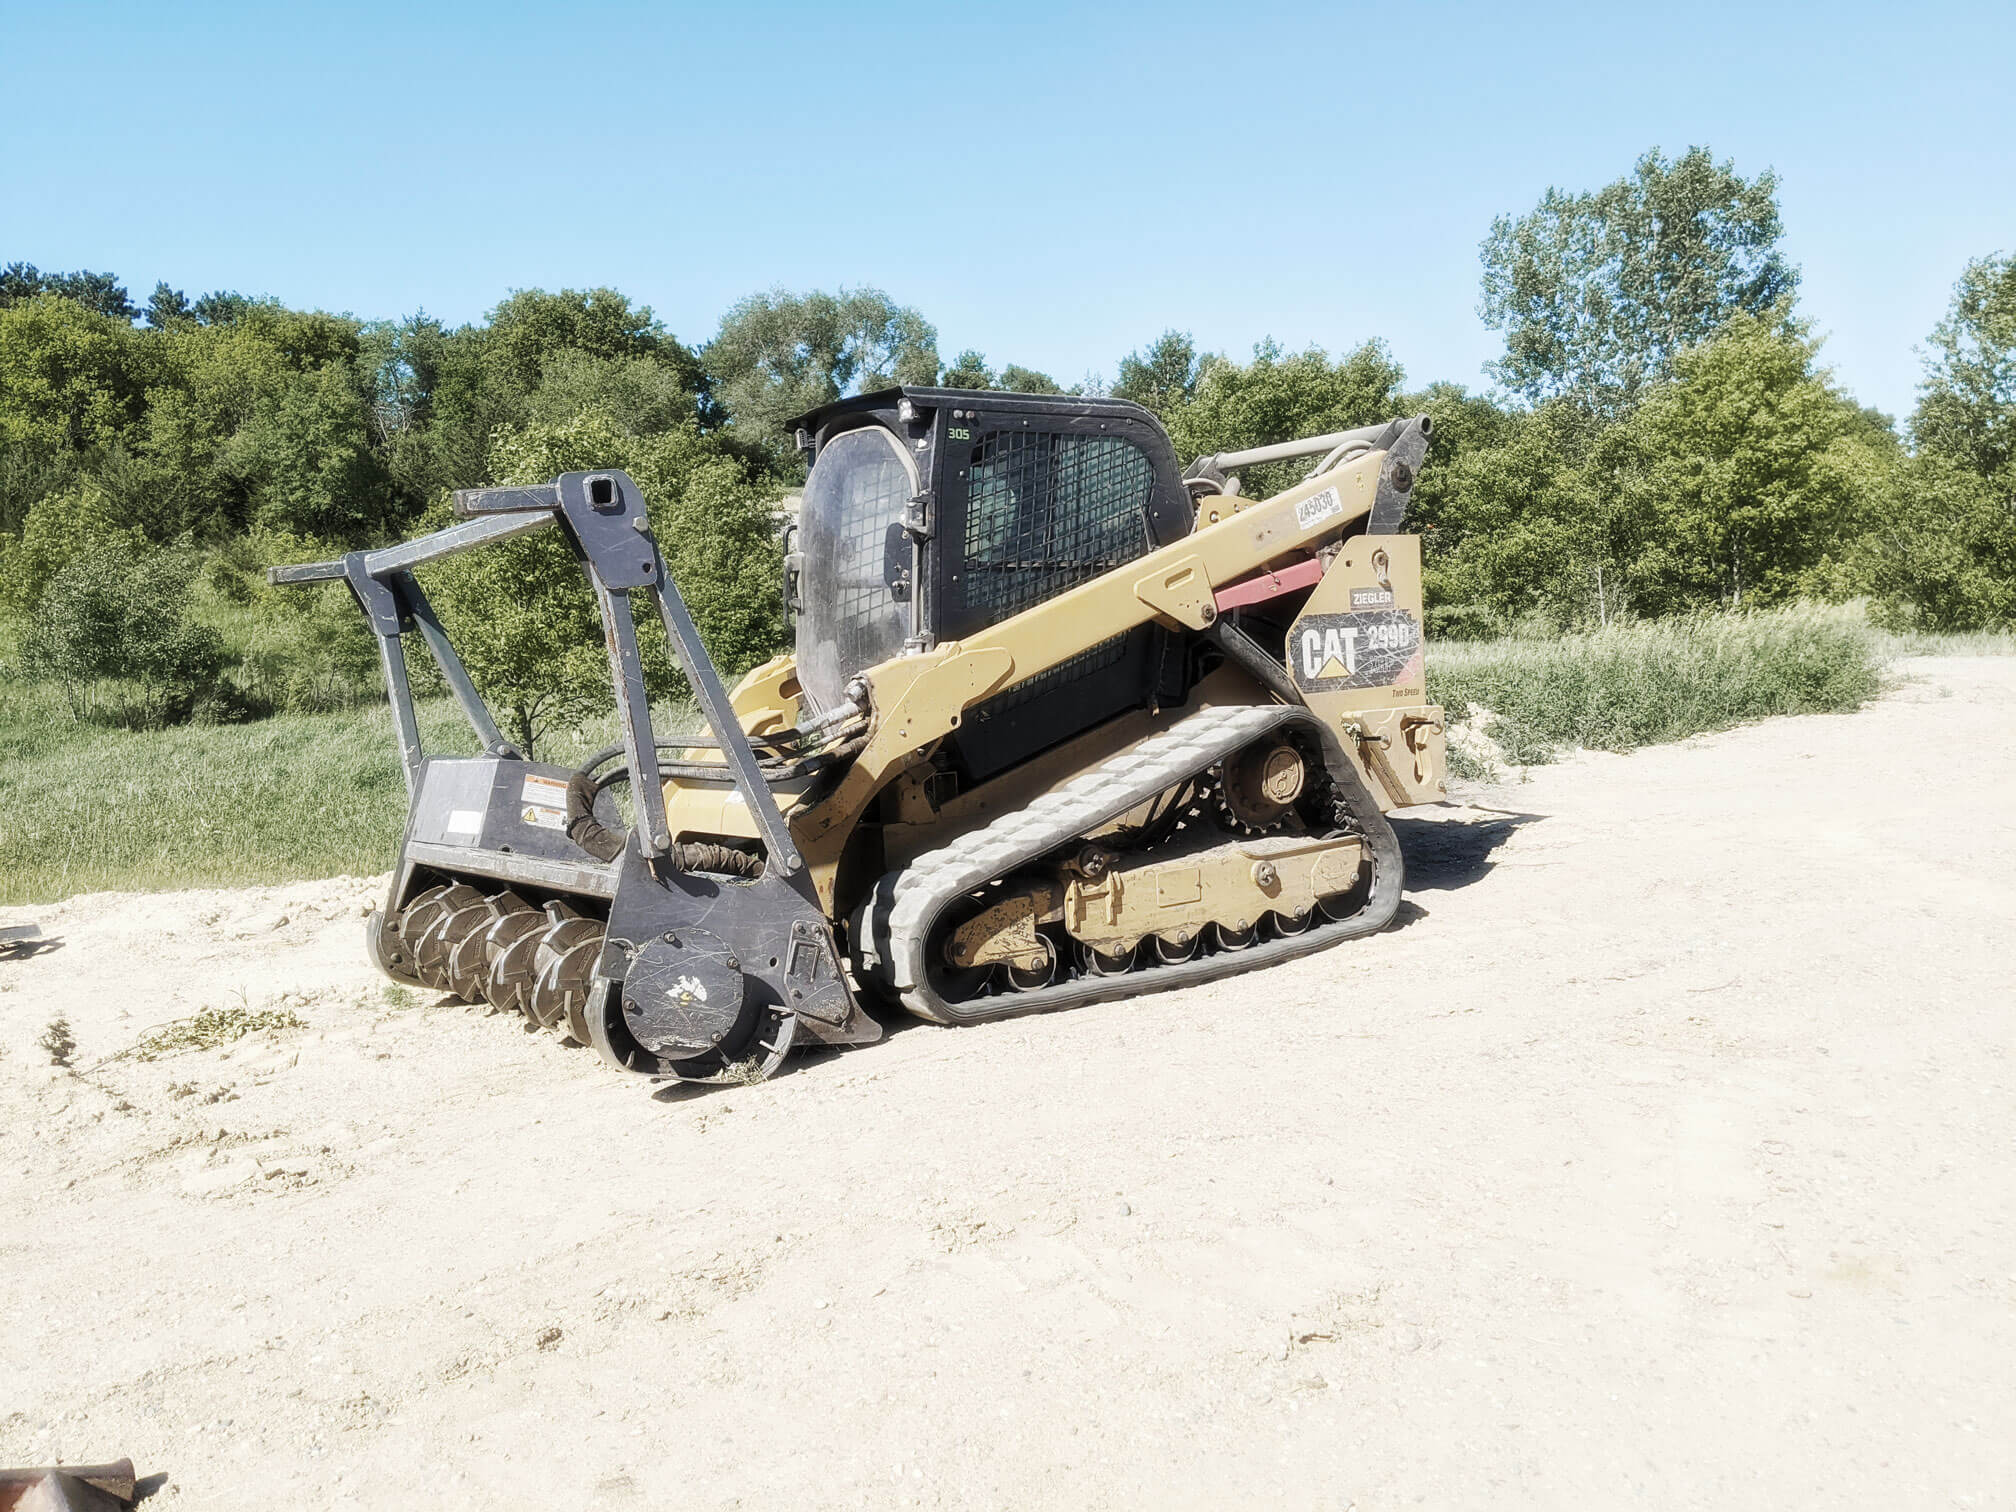 CAT skidsteer with Loftness Mulching Head parked on gravel with vegetation behind. Great for clearing unwanted vegetation